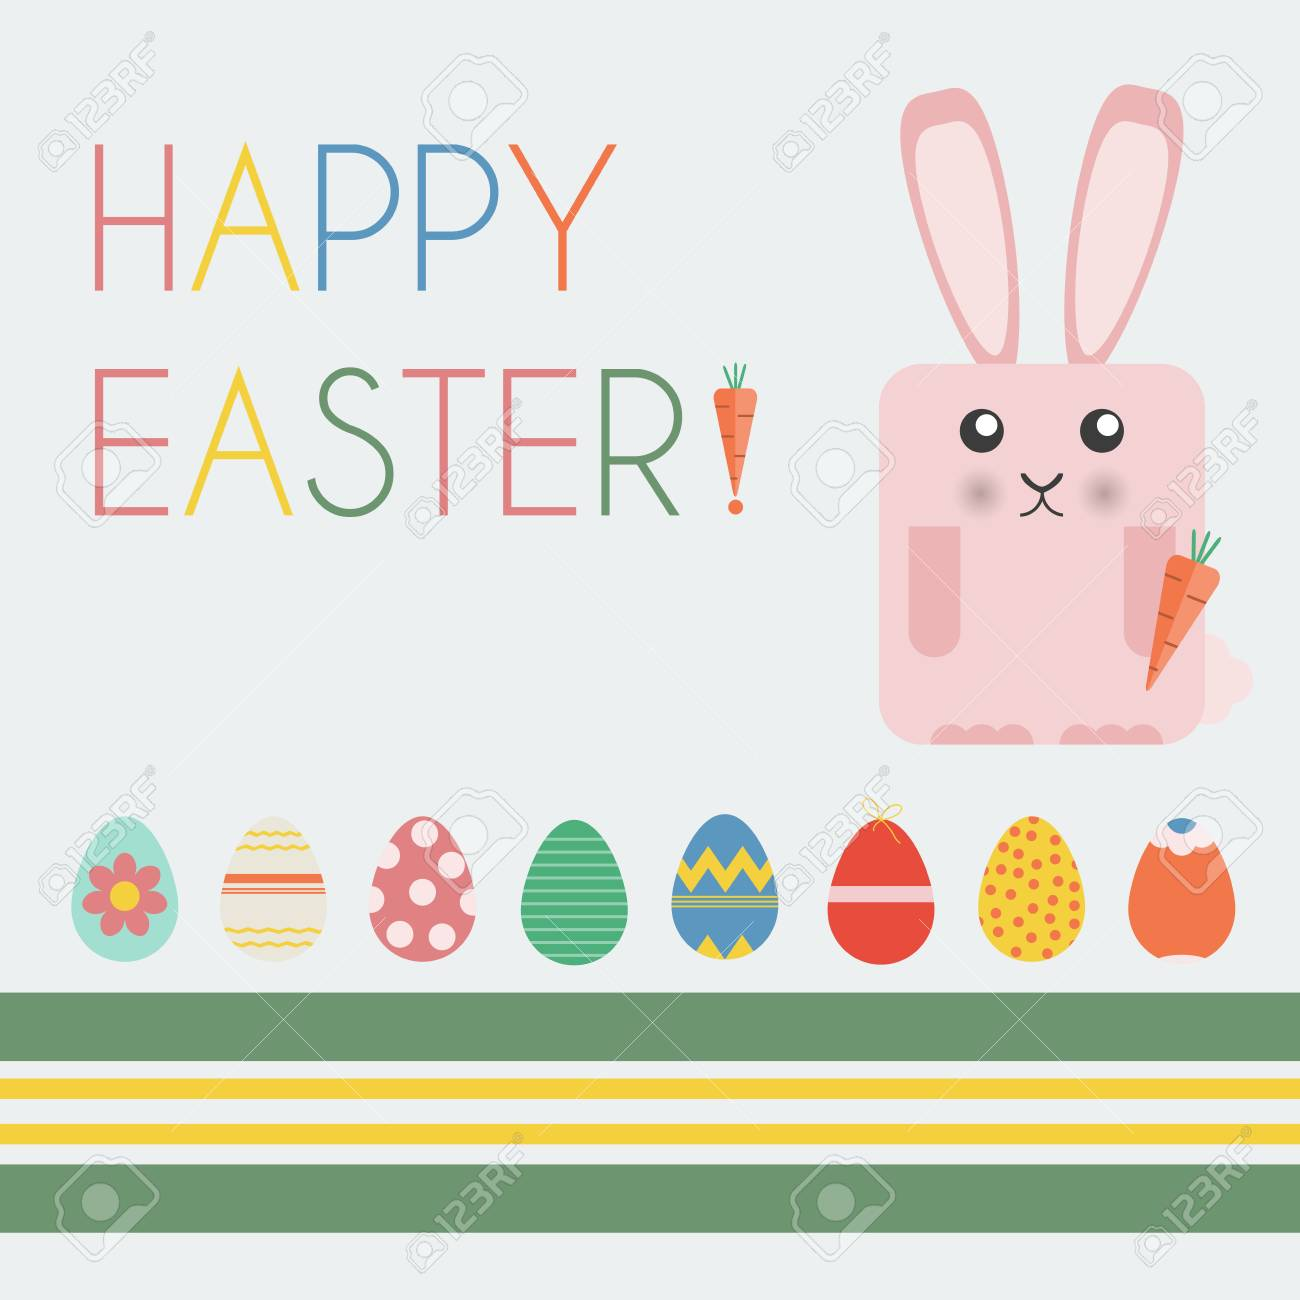 Happy Easter Greeting Card Easter Bunny And Easter Eggs Happy